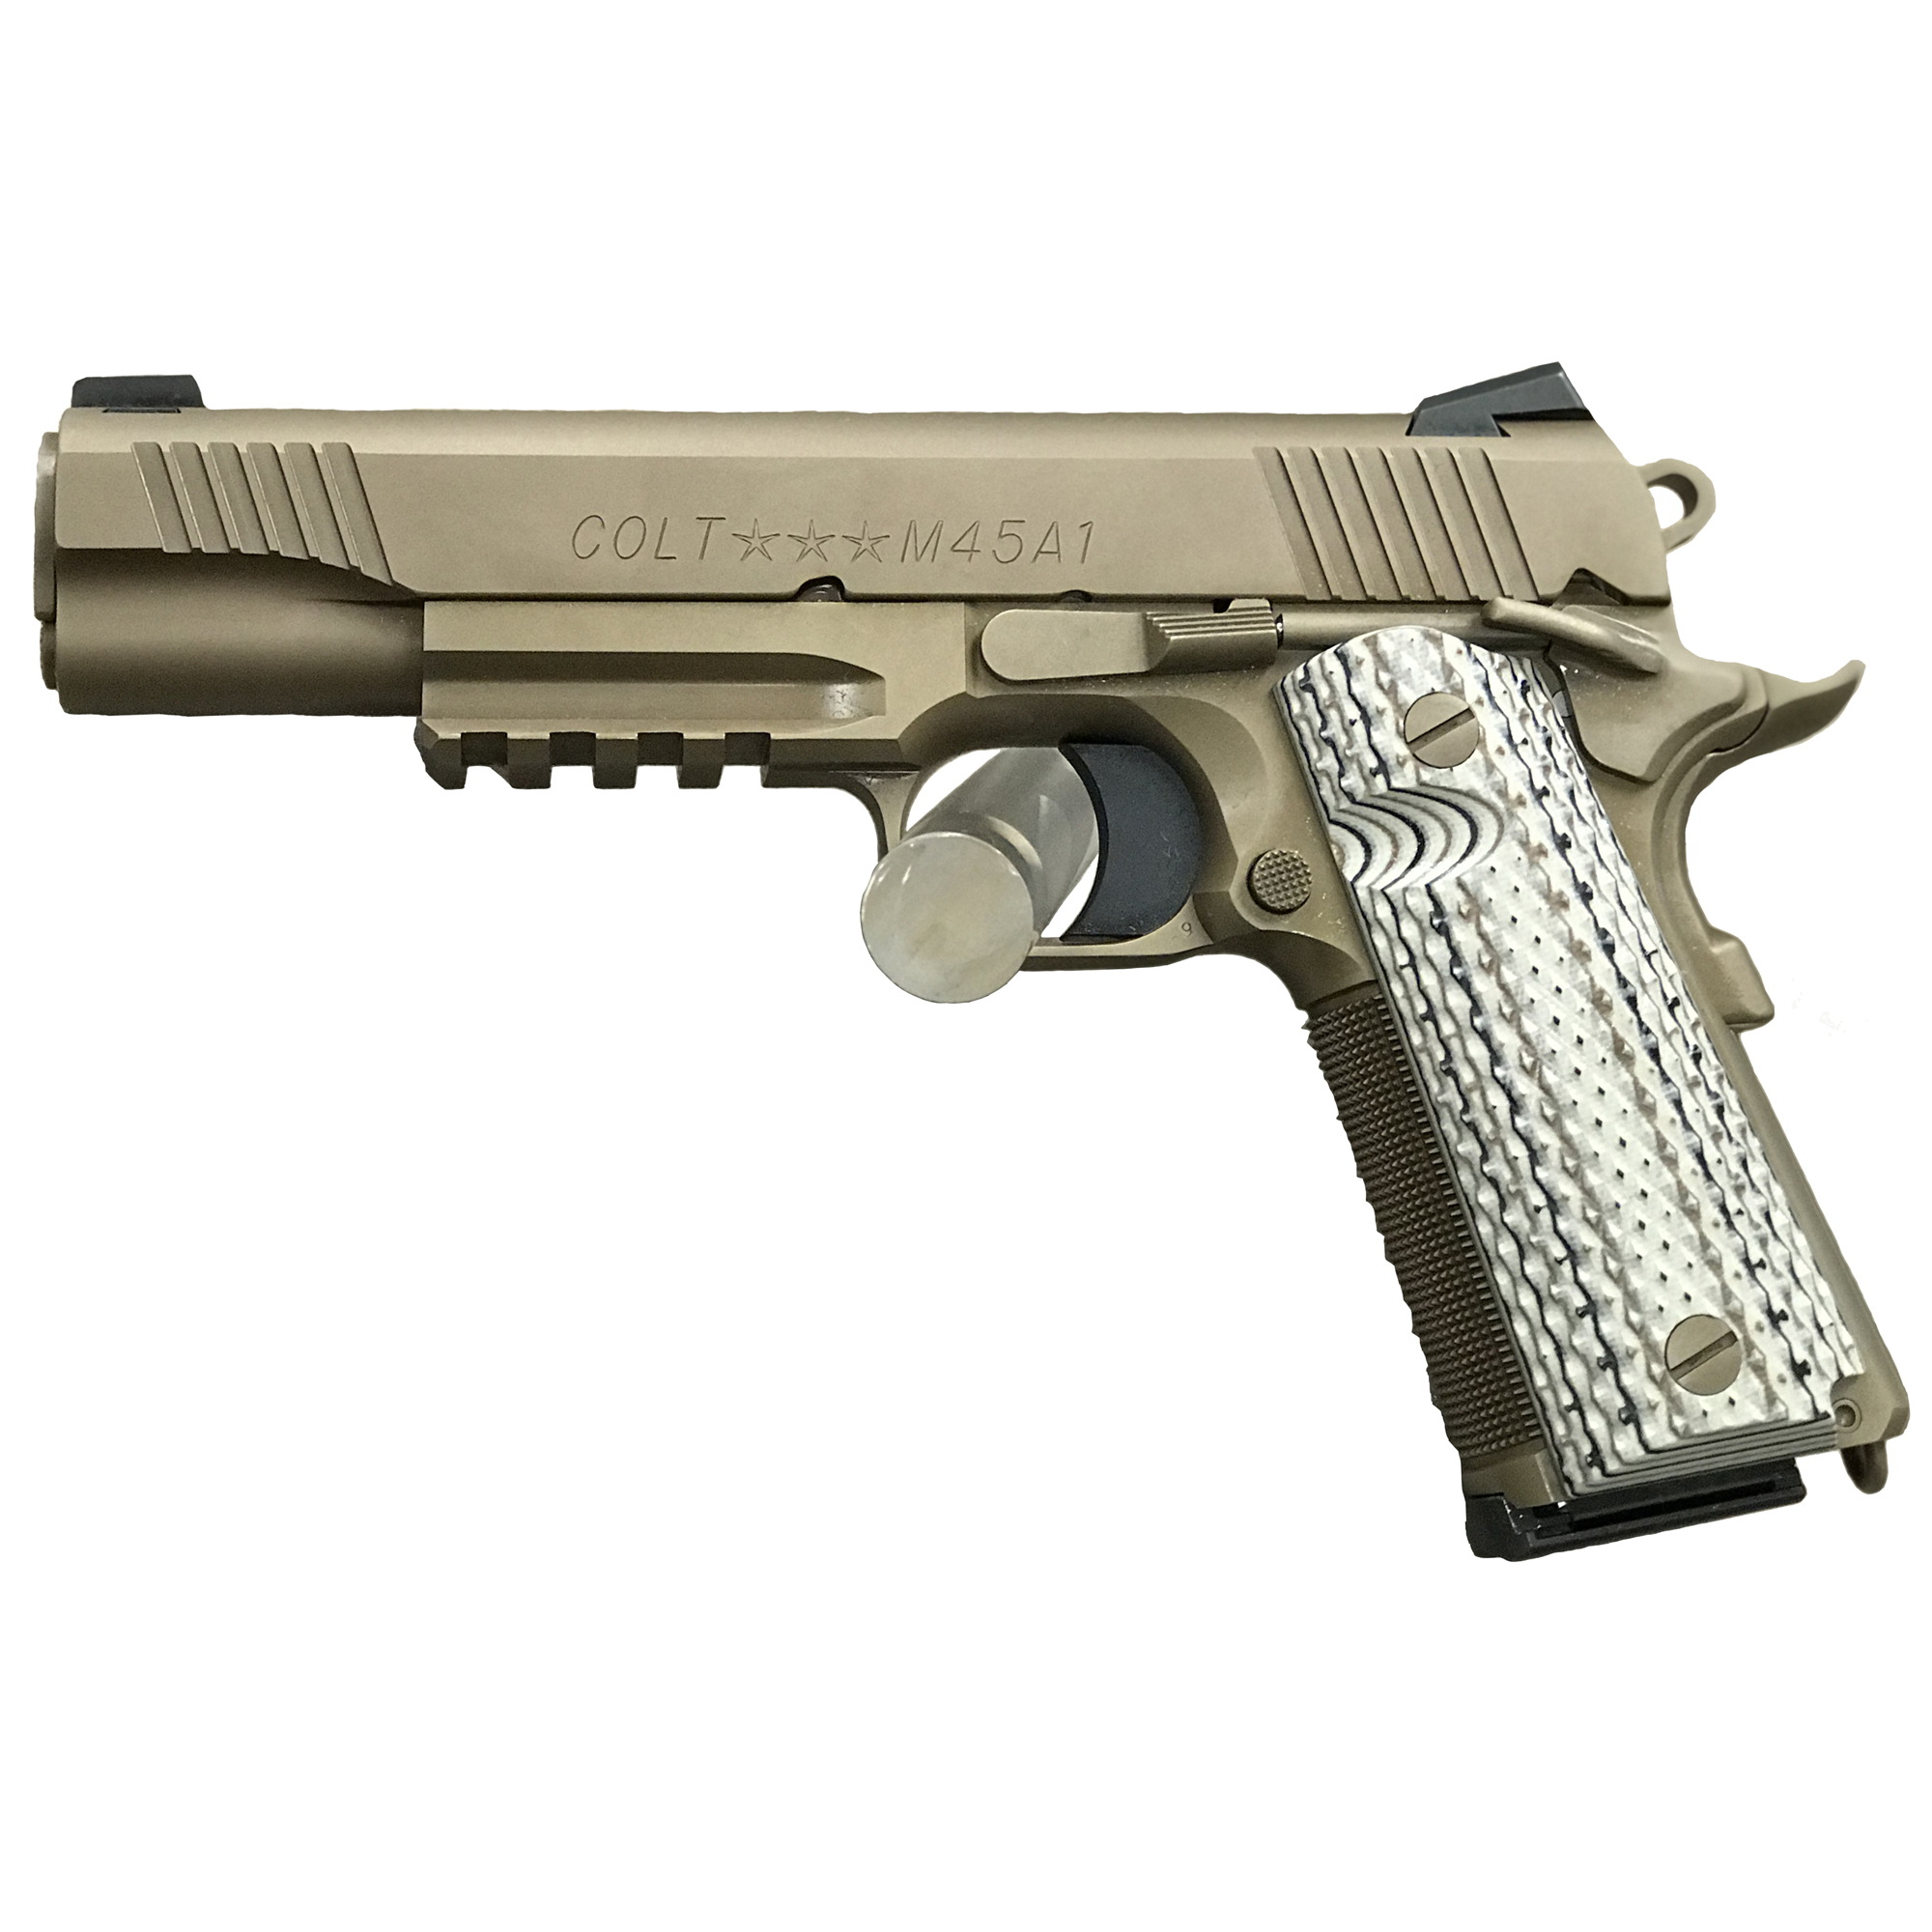 """The Colt M1911 pistol has been a favorite for 100 years as a service pistol"""" law enforcement pistol"""" and personal defense firearm. This pistol features a 5"""" National Match barrel"""" dark earth finish"""" steel frame and Novak Night sights."""